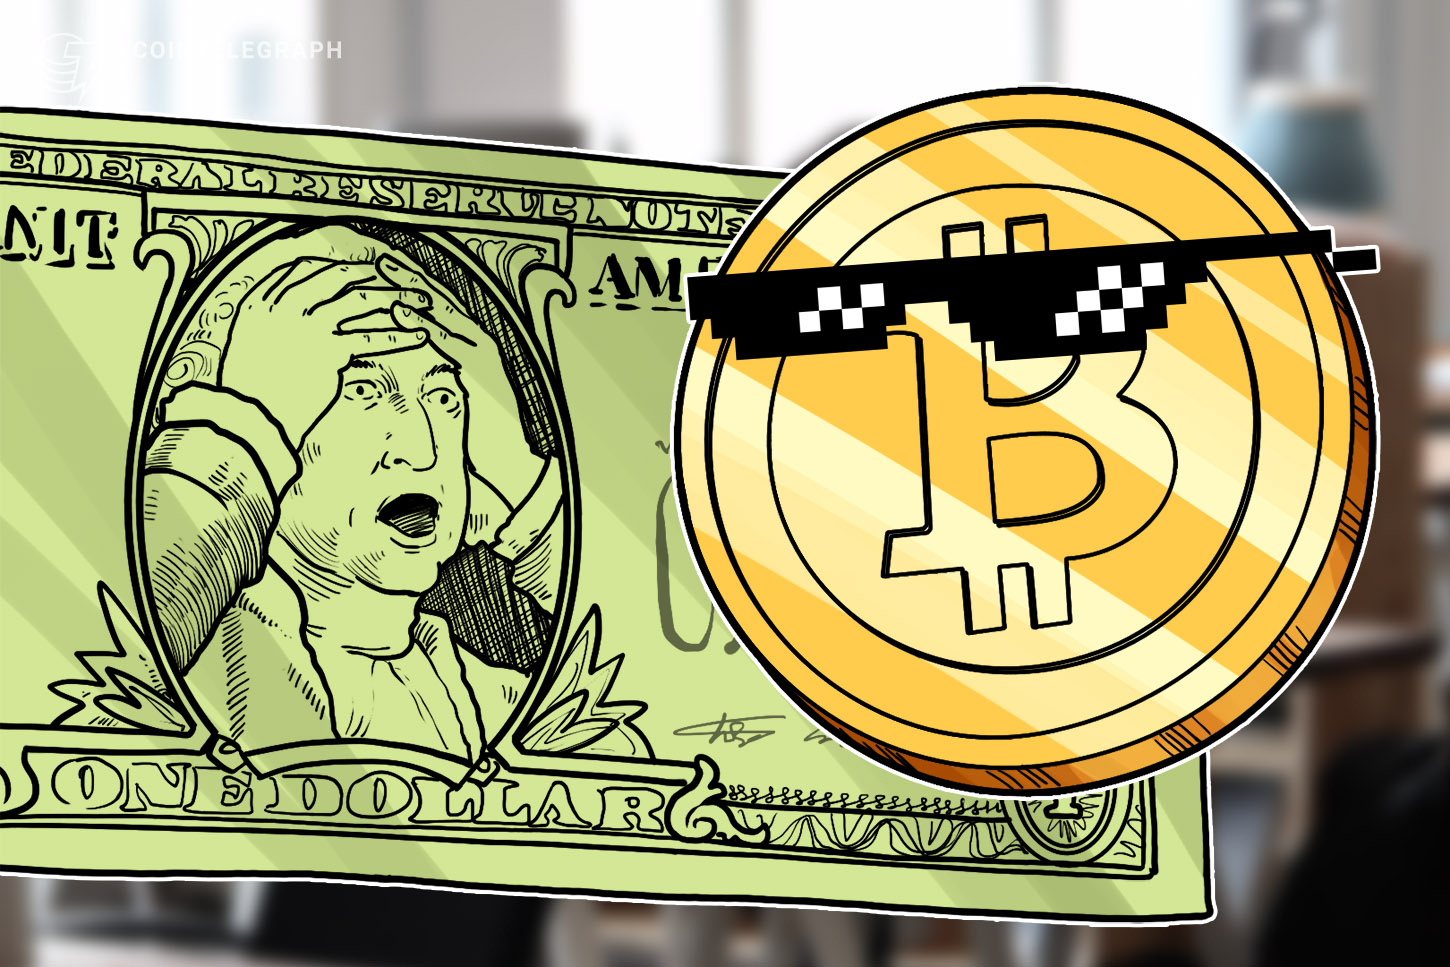 Bitcoin Investment App CEO Calls BTC a Monetary Revolution, Not a Technical One